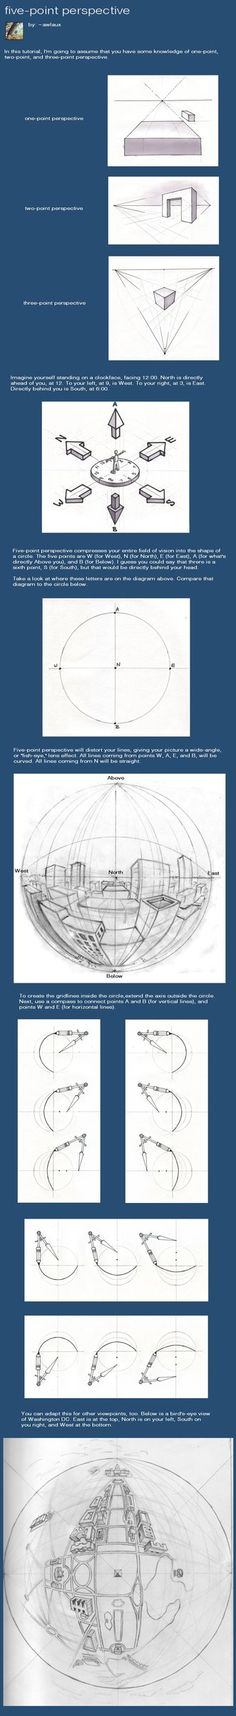 A brief tutorial on five point perspective. I'd love to get your feedback on this!